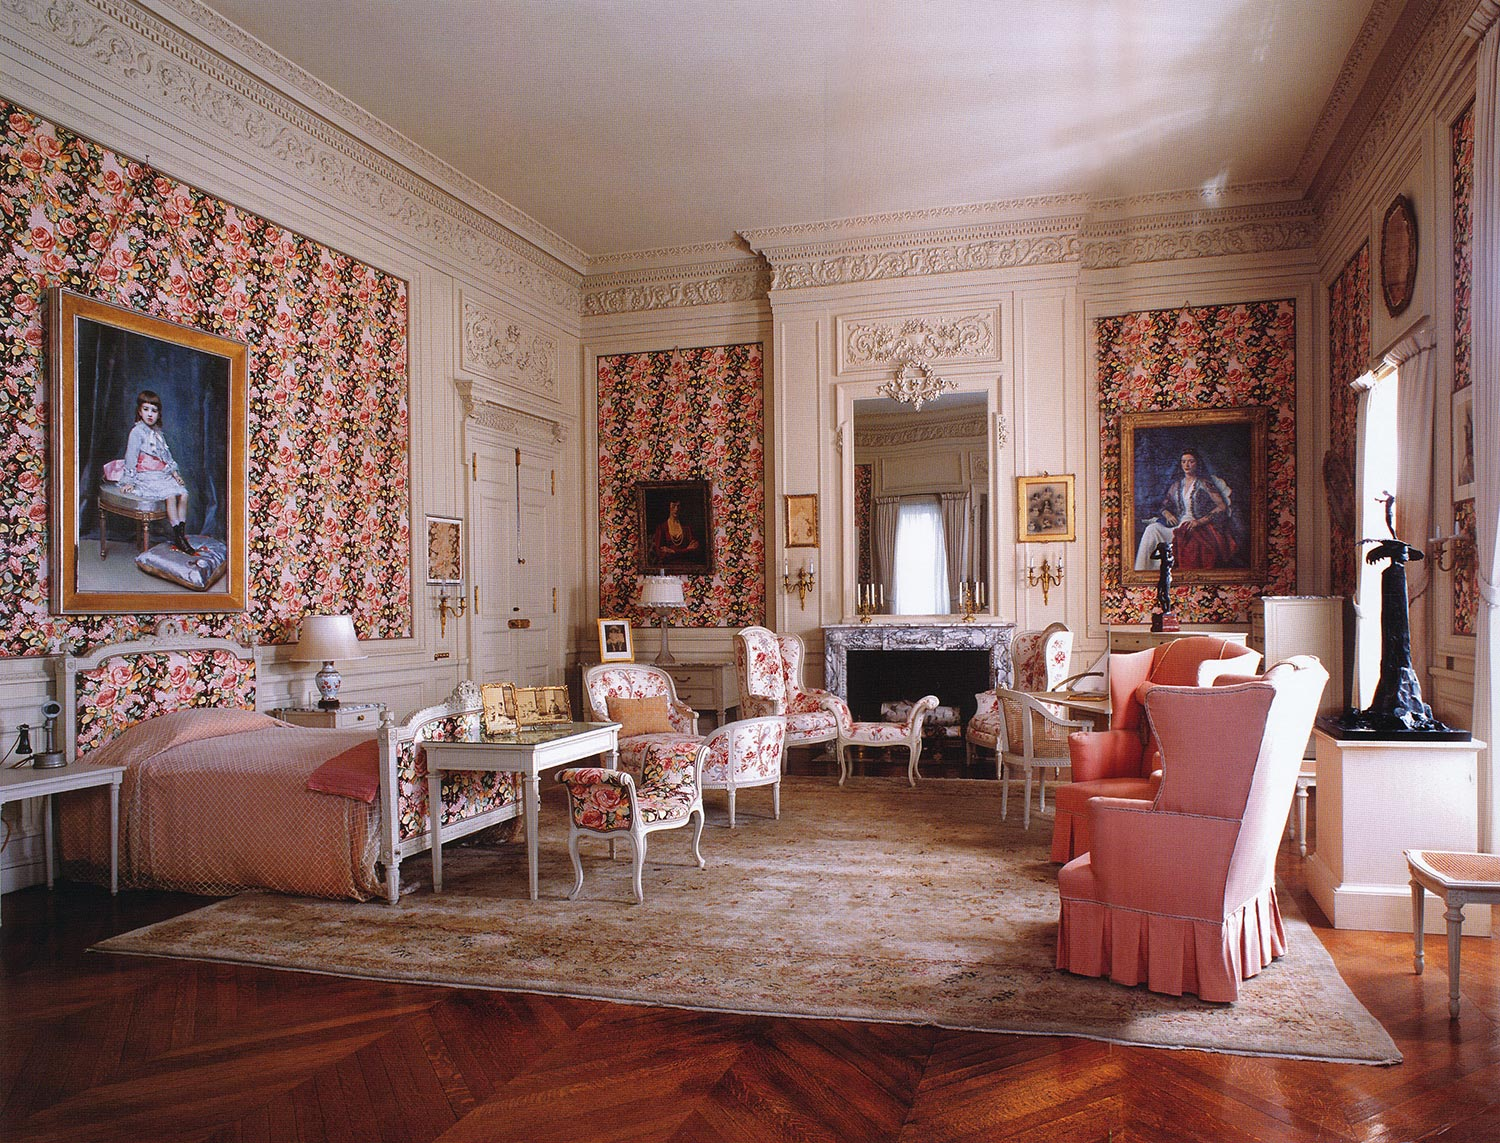 Gertrude Vanderbilt Whitney's room features French furnishings selected by the decorator Ogden Codman and portraits of Mrs. Whitney and her daughter.